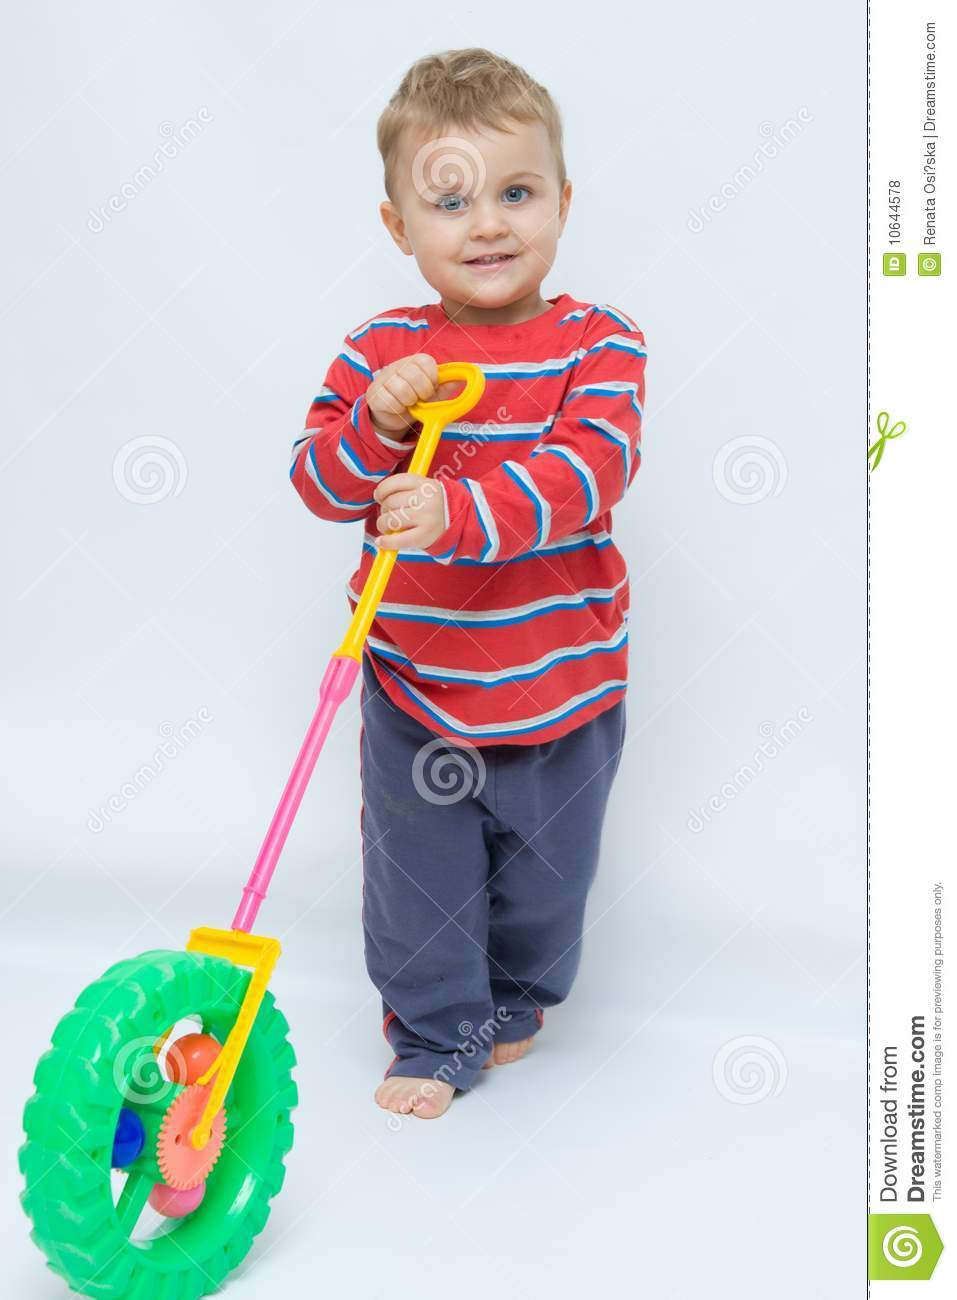 toddlers toys stock photo image of pushing cute bare 10644578